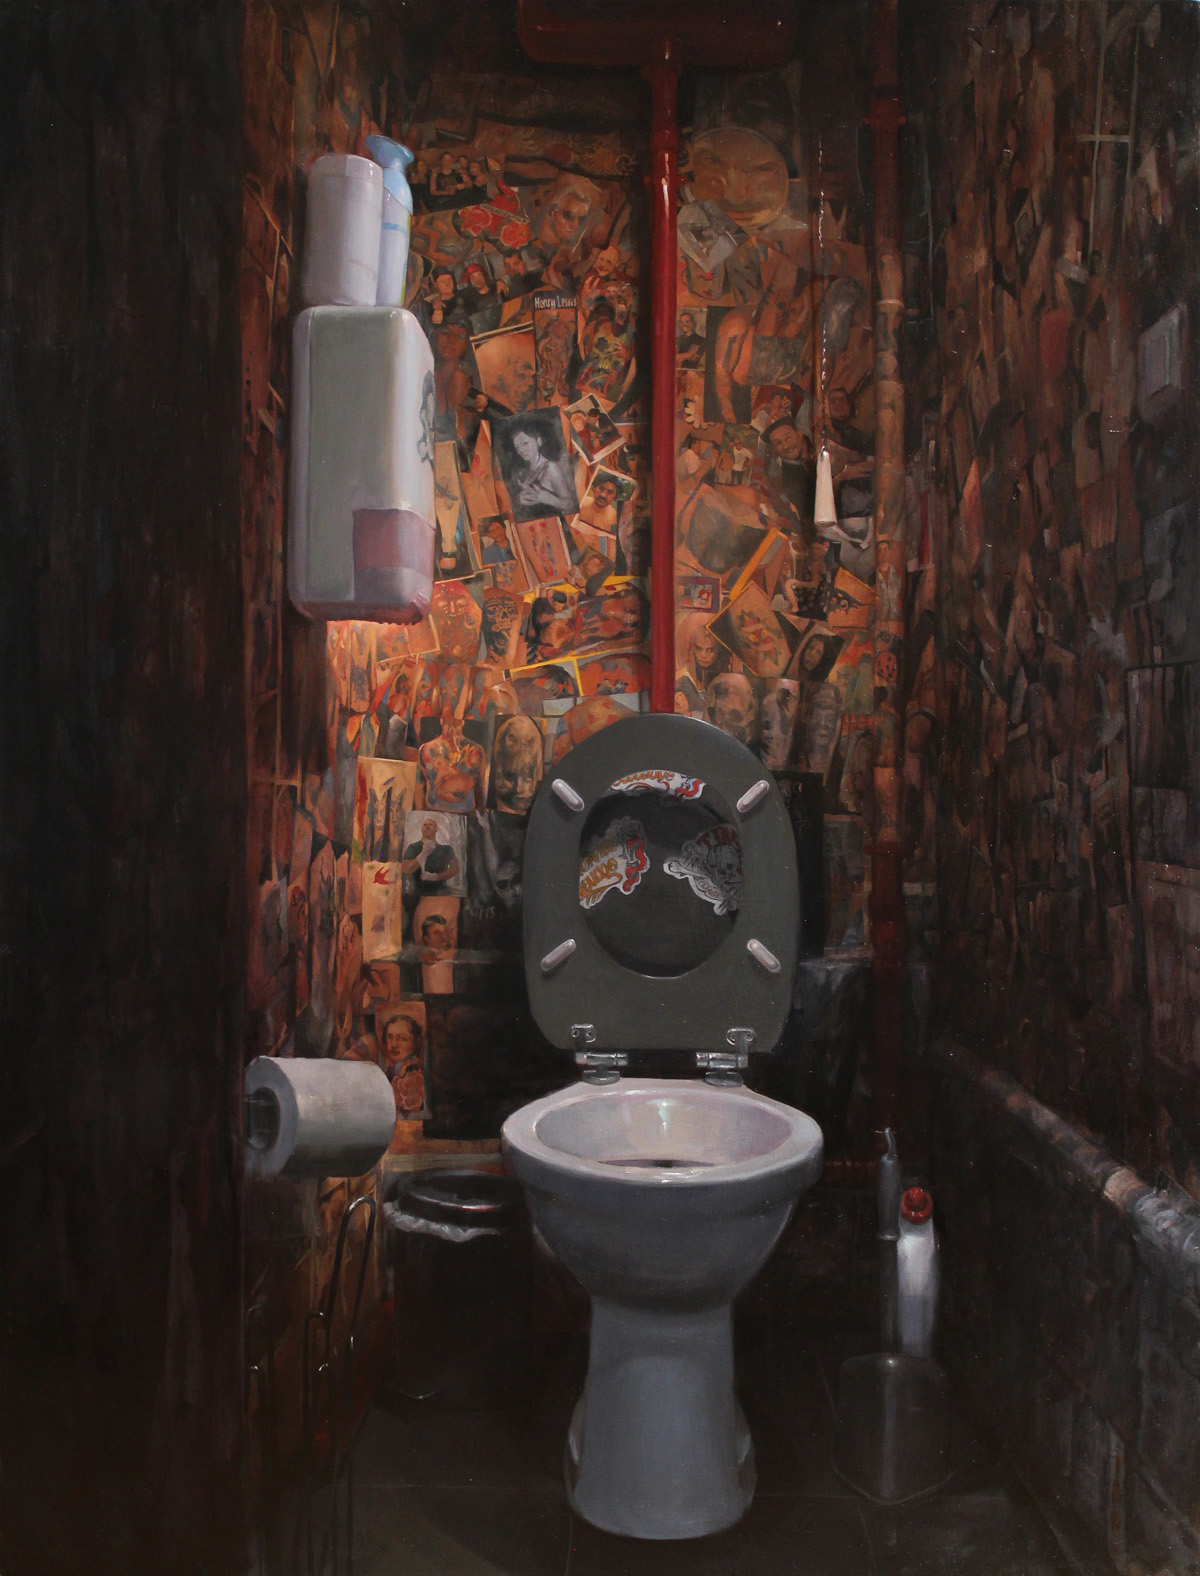 "'Tin-tin's Toilette, Paris, France', oil on panel, 48"" x 36"", 2016"